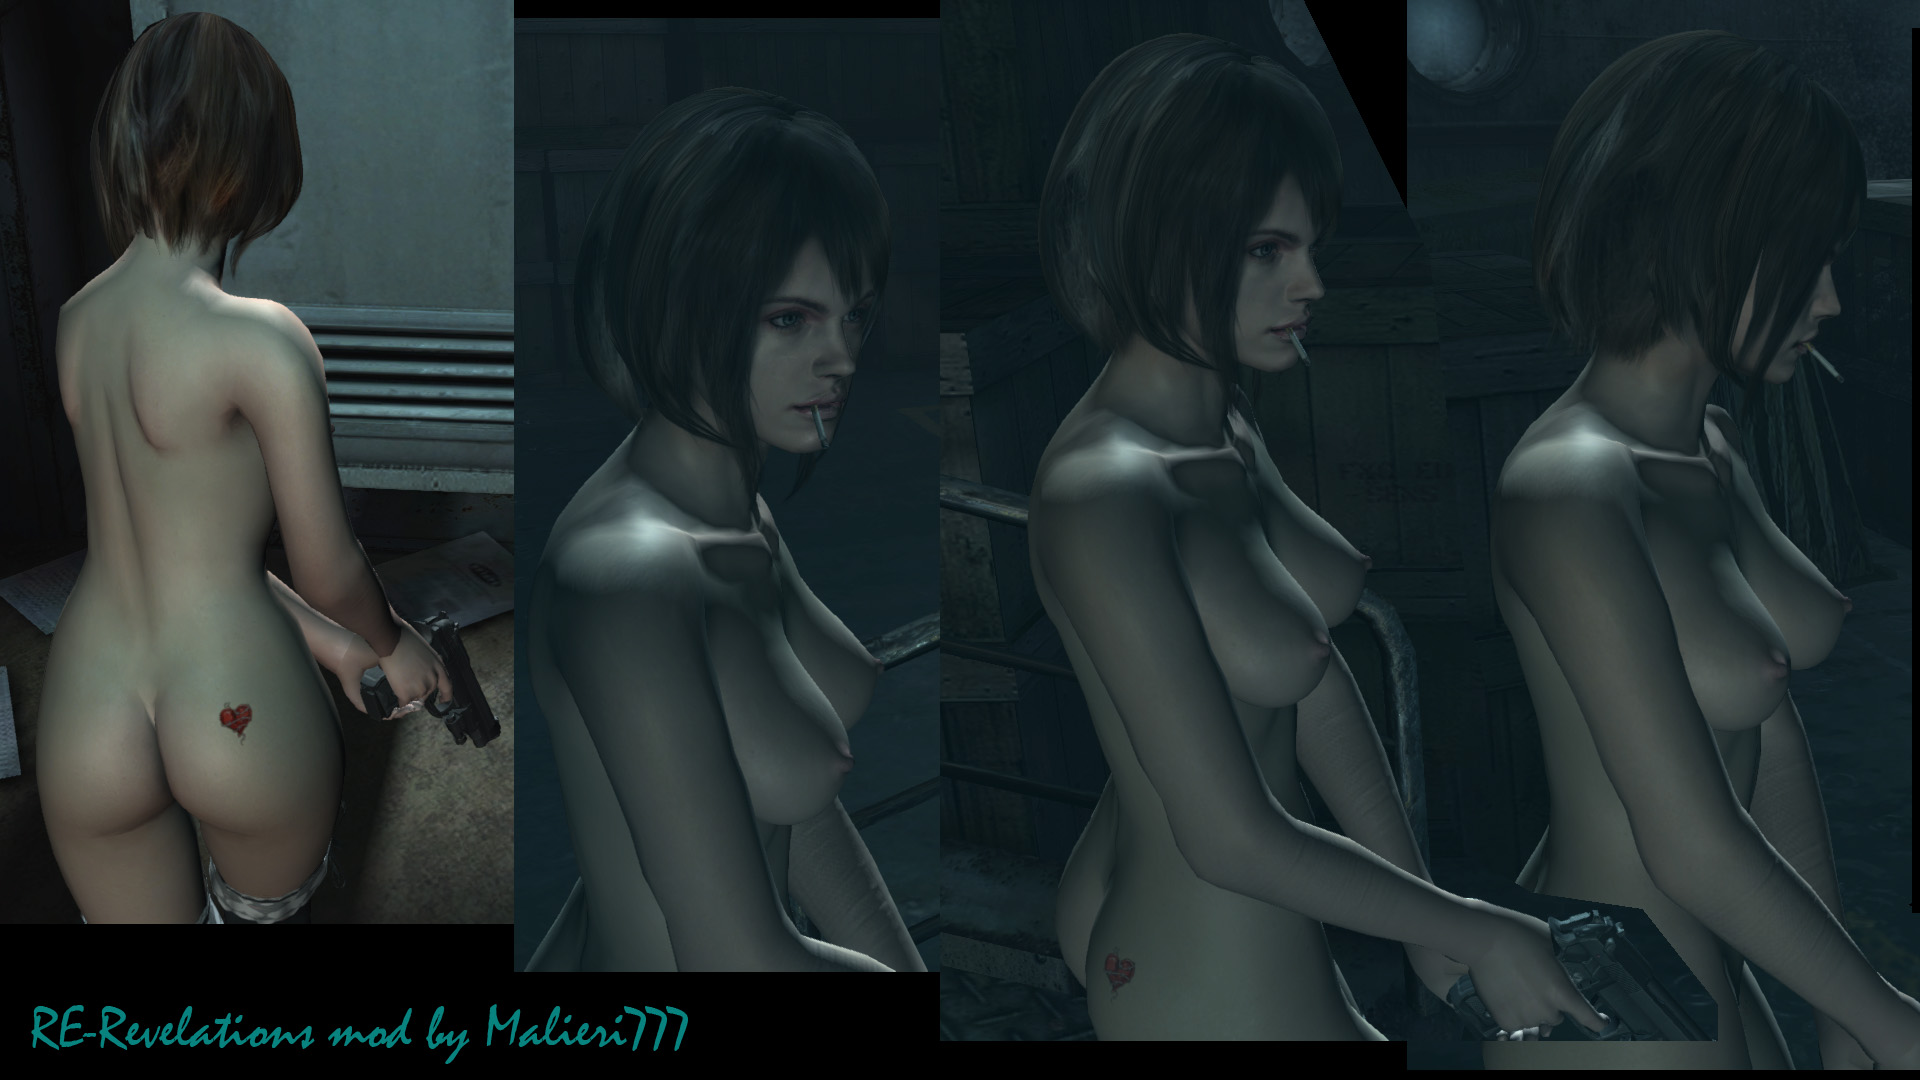 Resident evil all parts nude mod rar fucked images